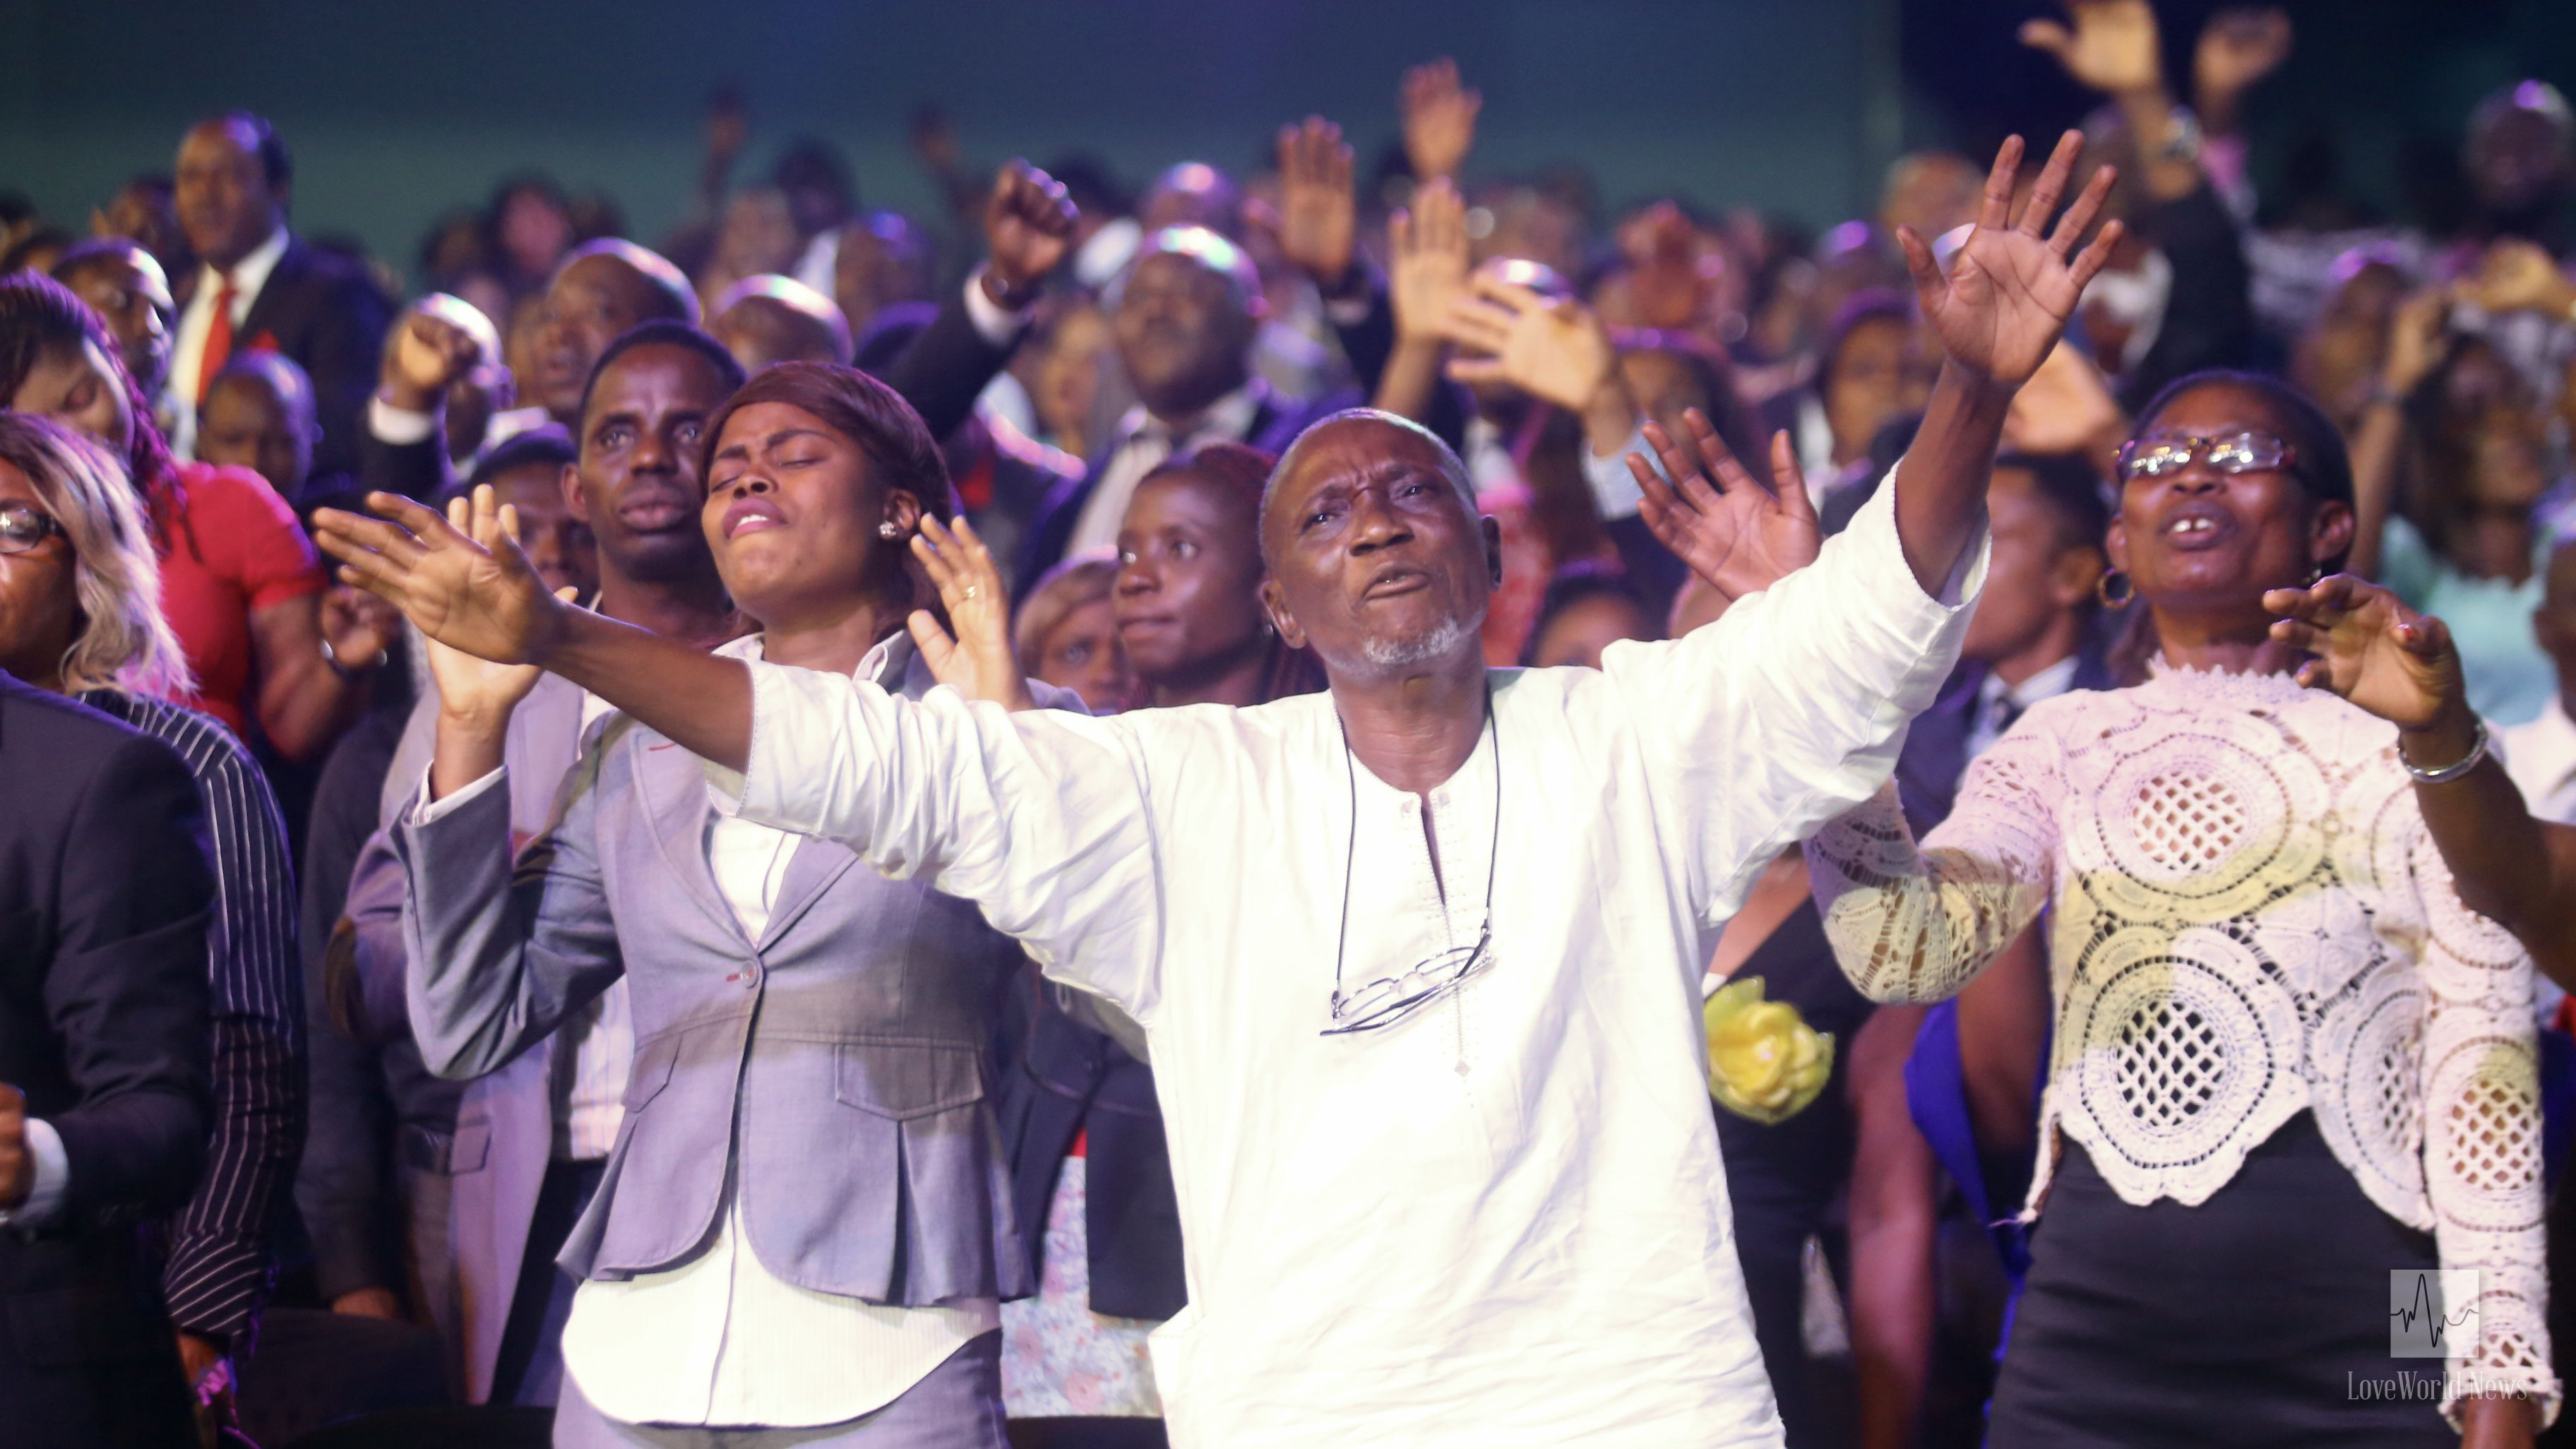 The people worship with hands lifted high.